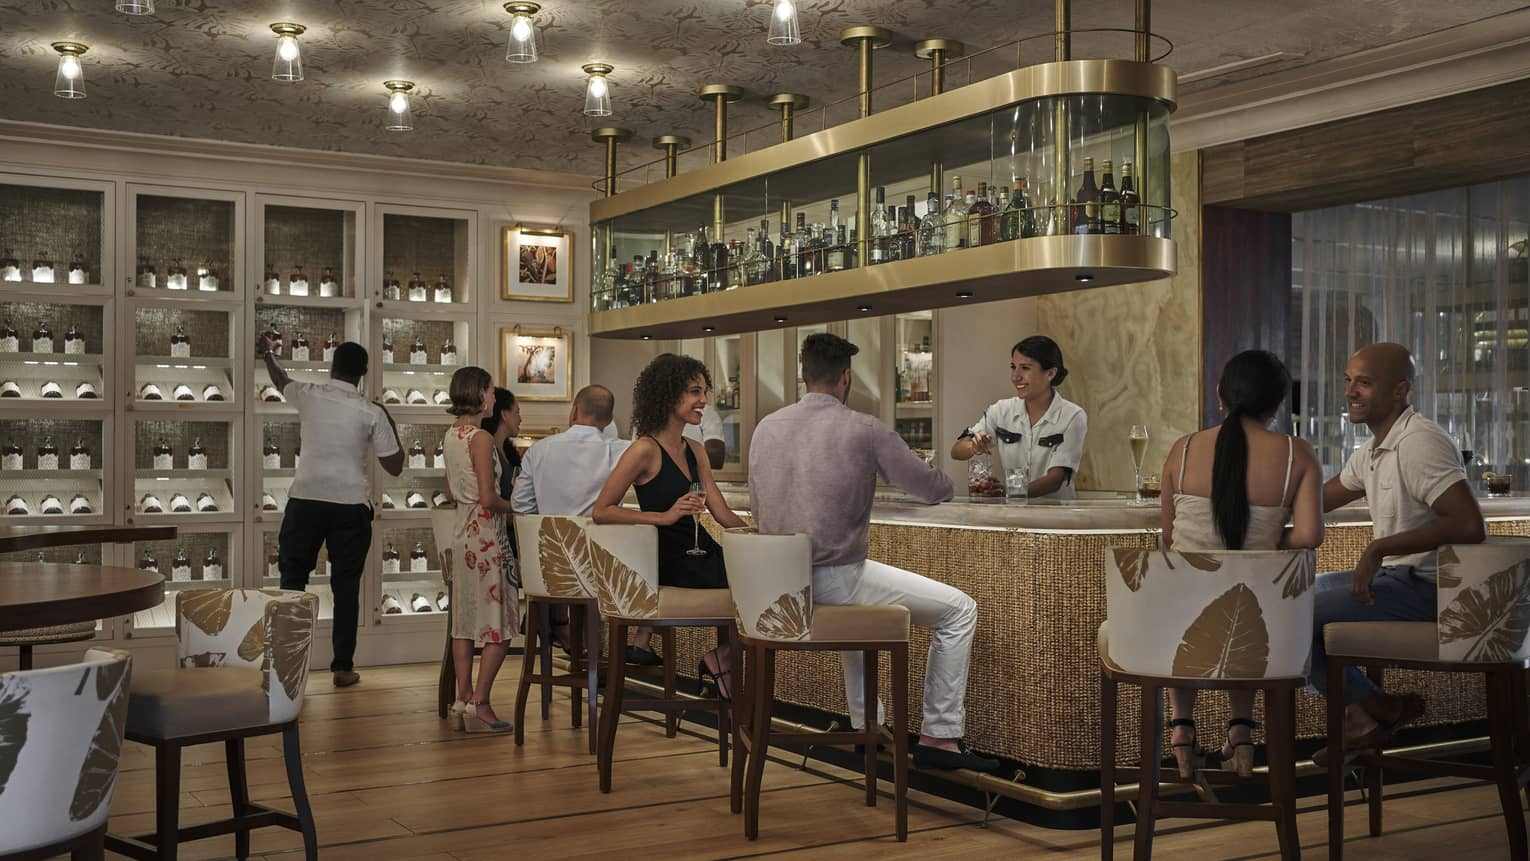 People mingle at a bar, with a hanging shelf holding bottles and a wall of wine shelving